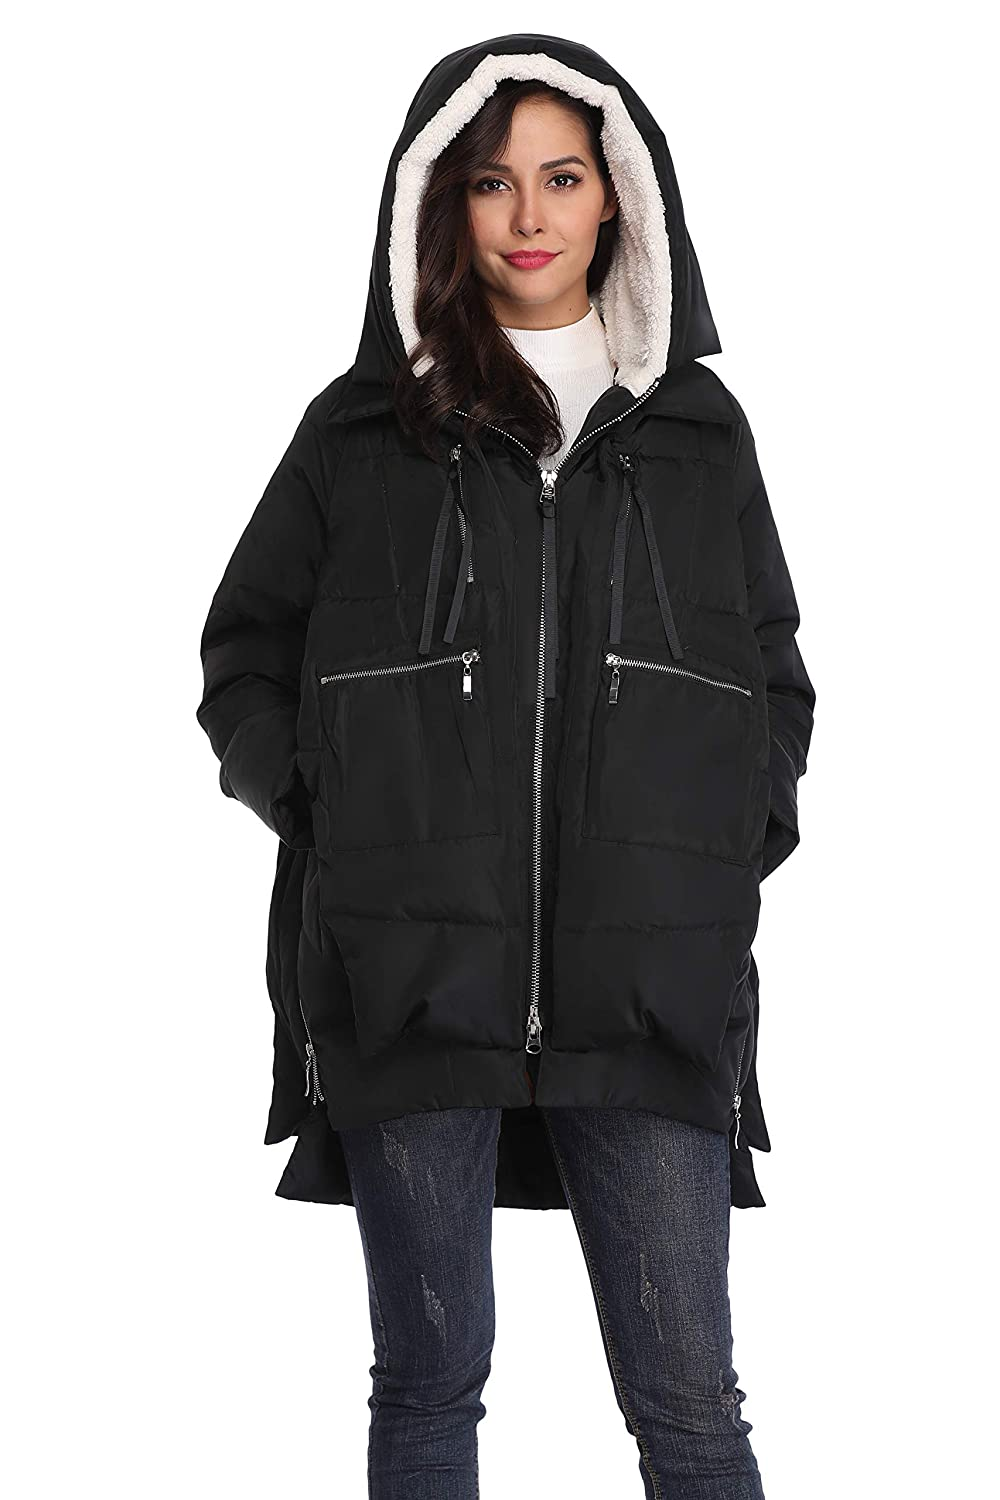 d6f339e38 Shanghai Bund Women's Thickened Down Jacket with Hood Winter Warm Hooded  Parka Coat